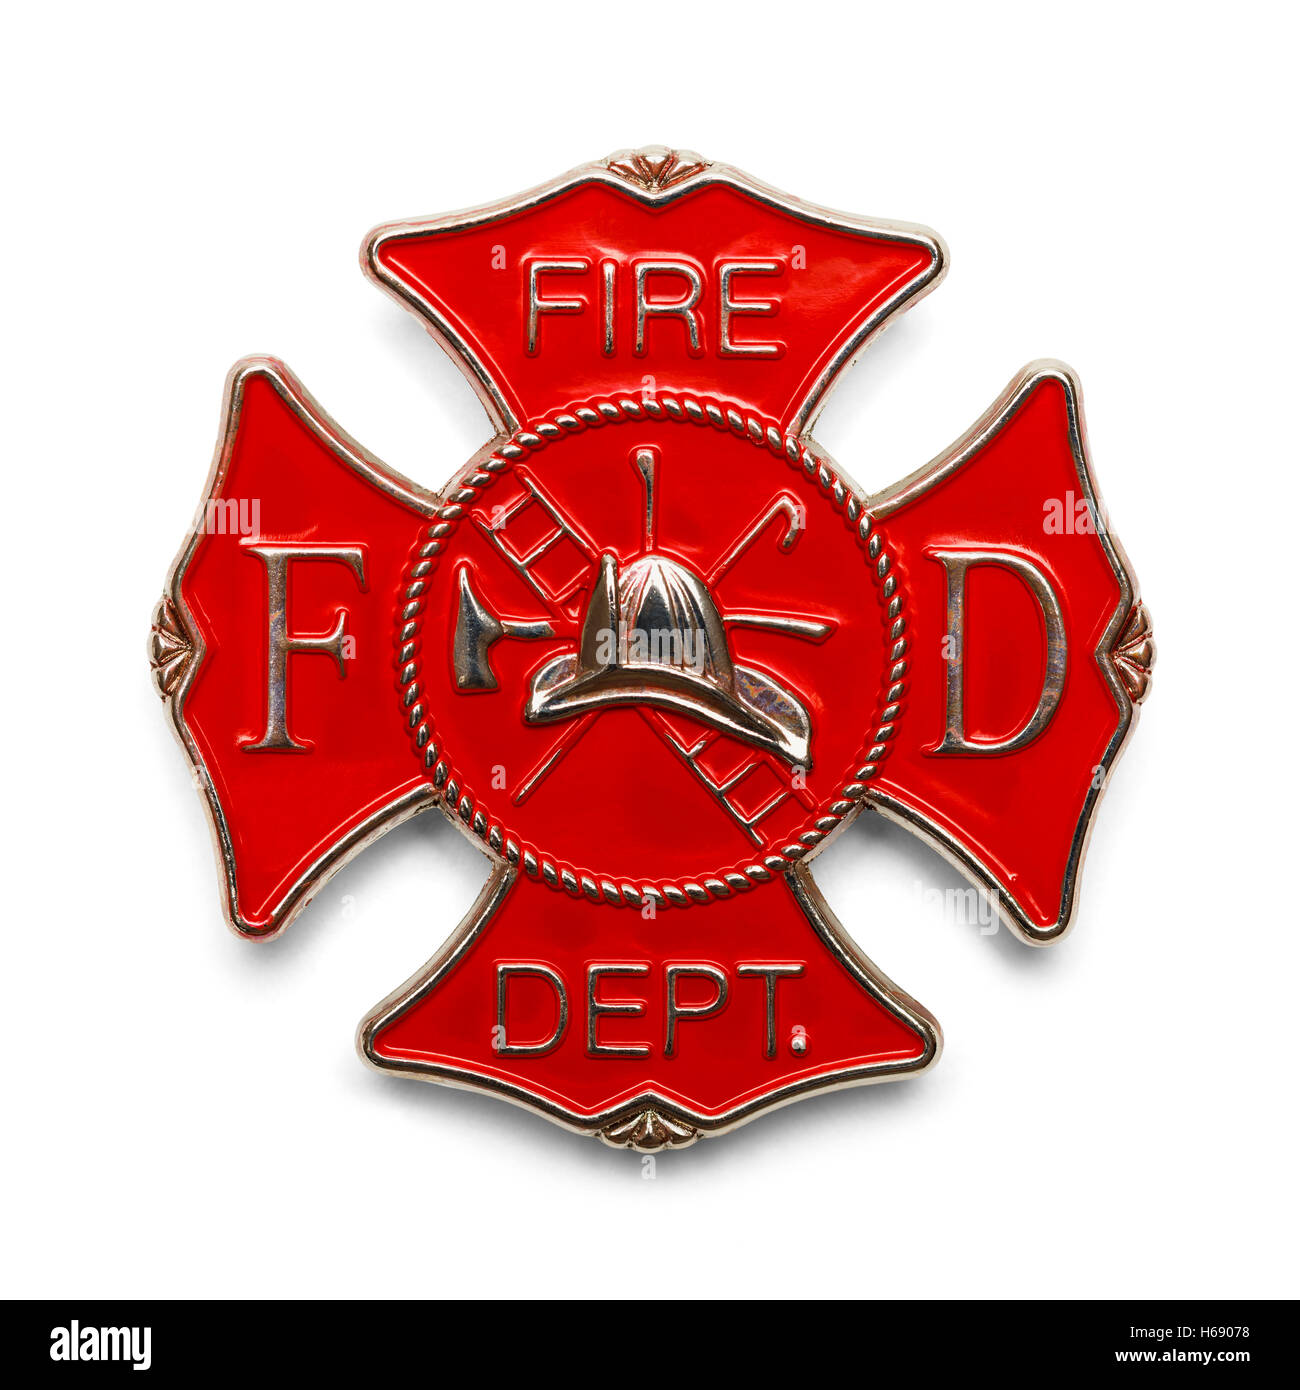 Red Fire Department Badge Isolated on White Background. - Stock Image